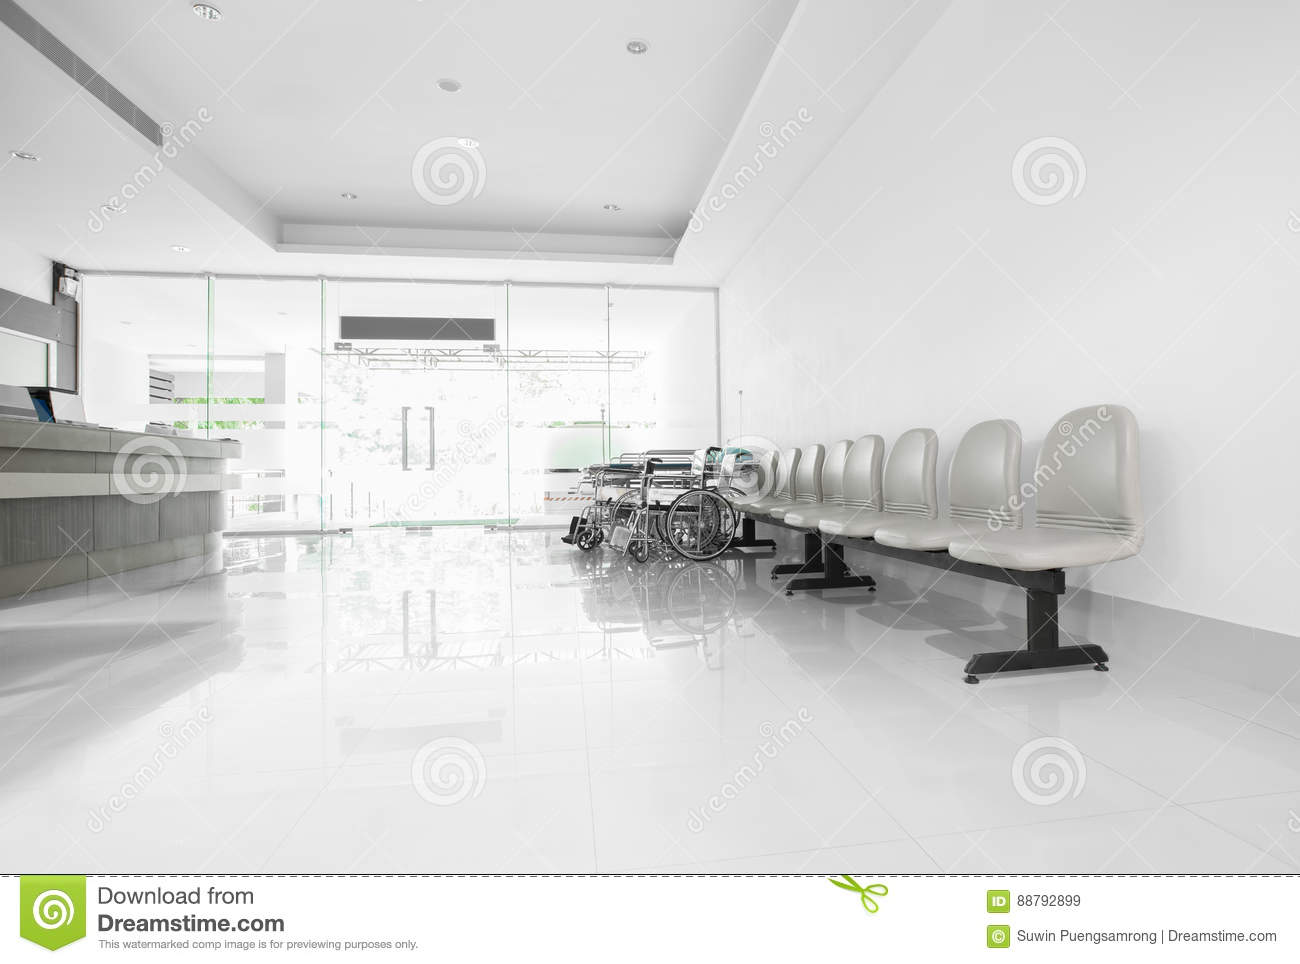 Seats and wheelchair in hospital hallway